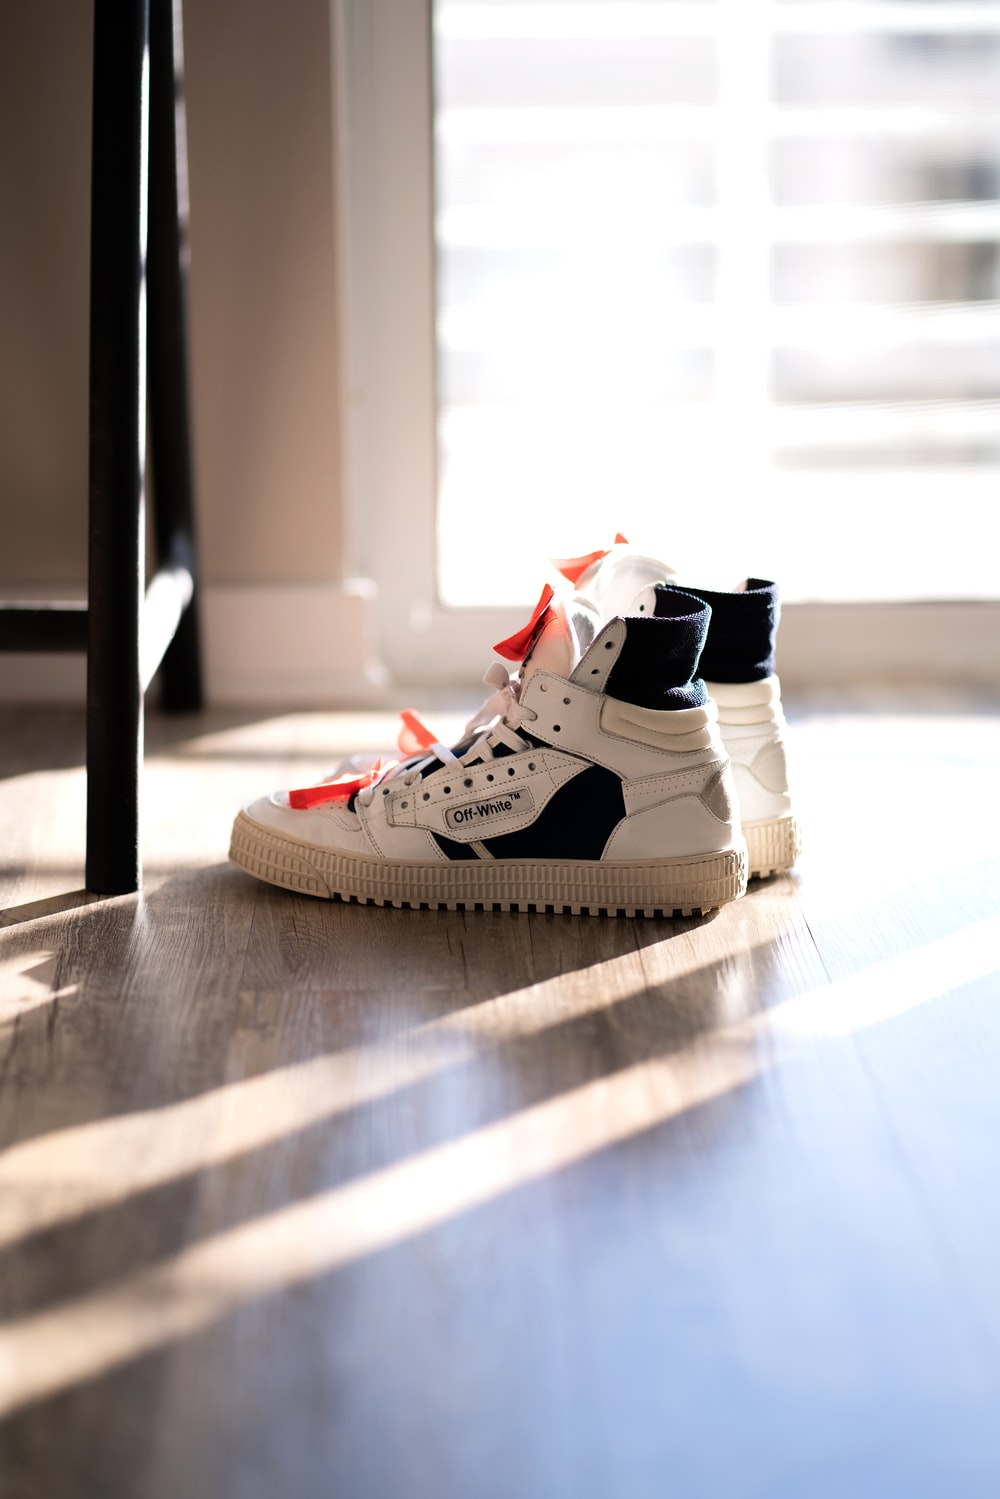 pair of white-and-black high top sneakers on floor